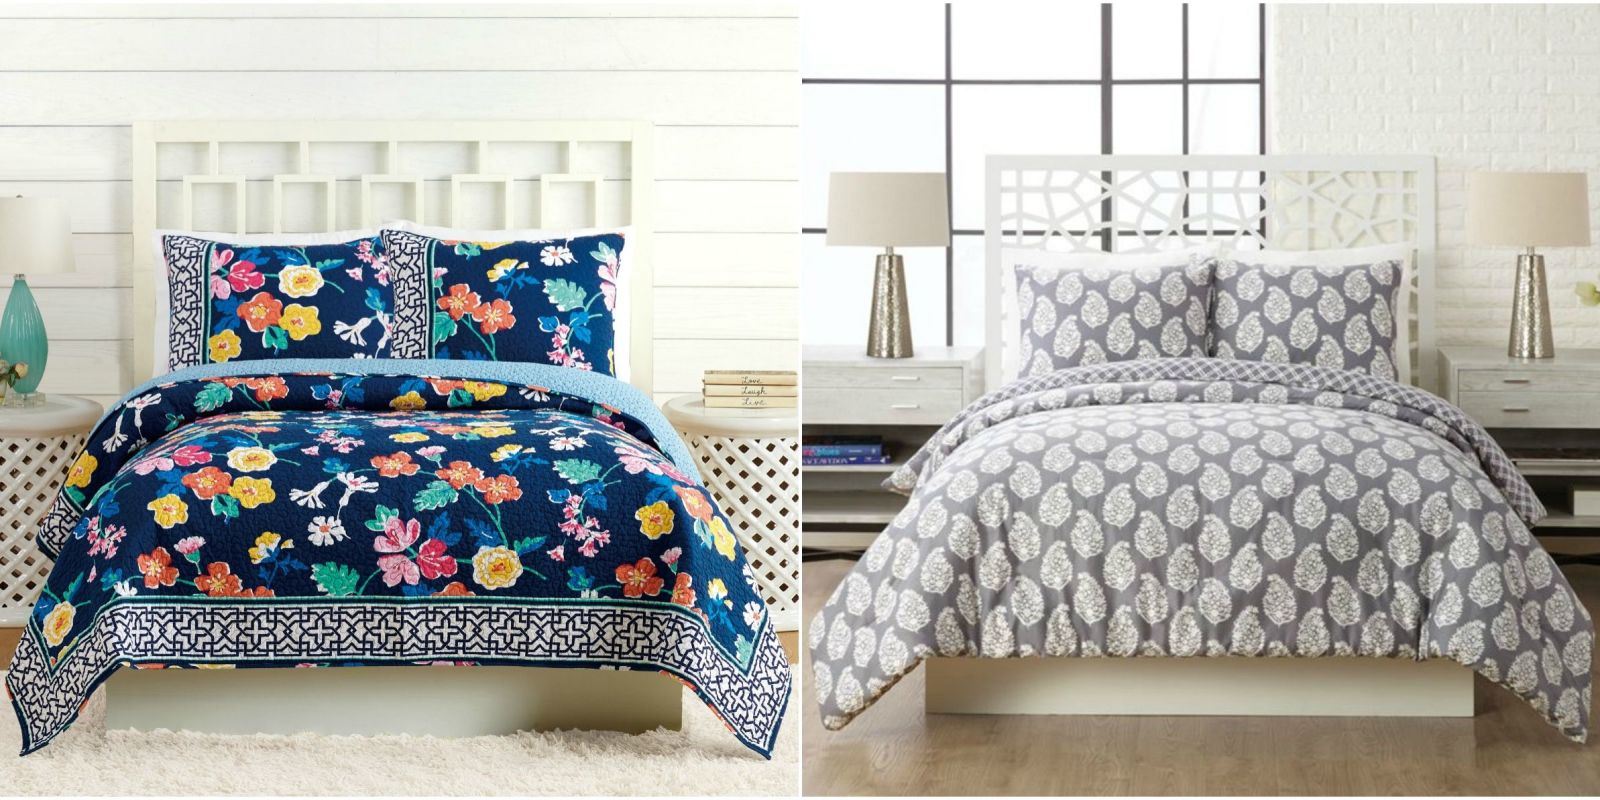 New Vera Bradley Bedding Collection